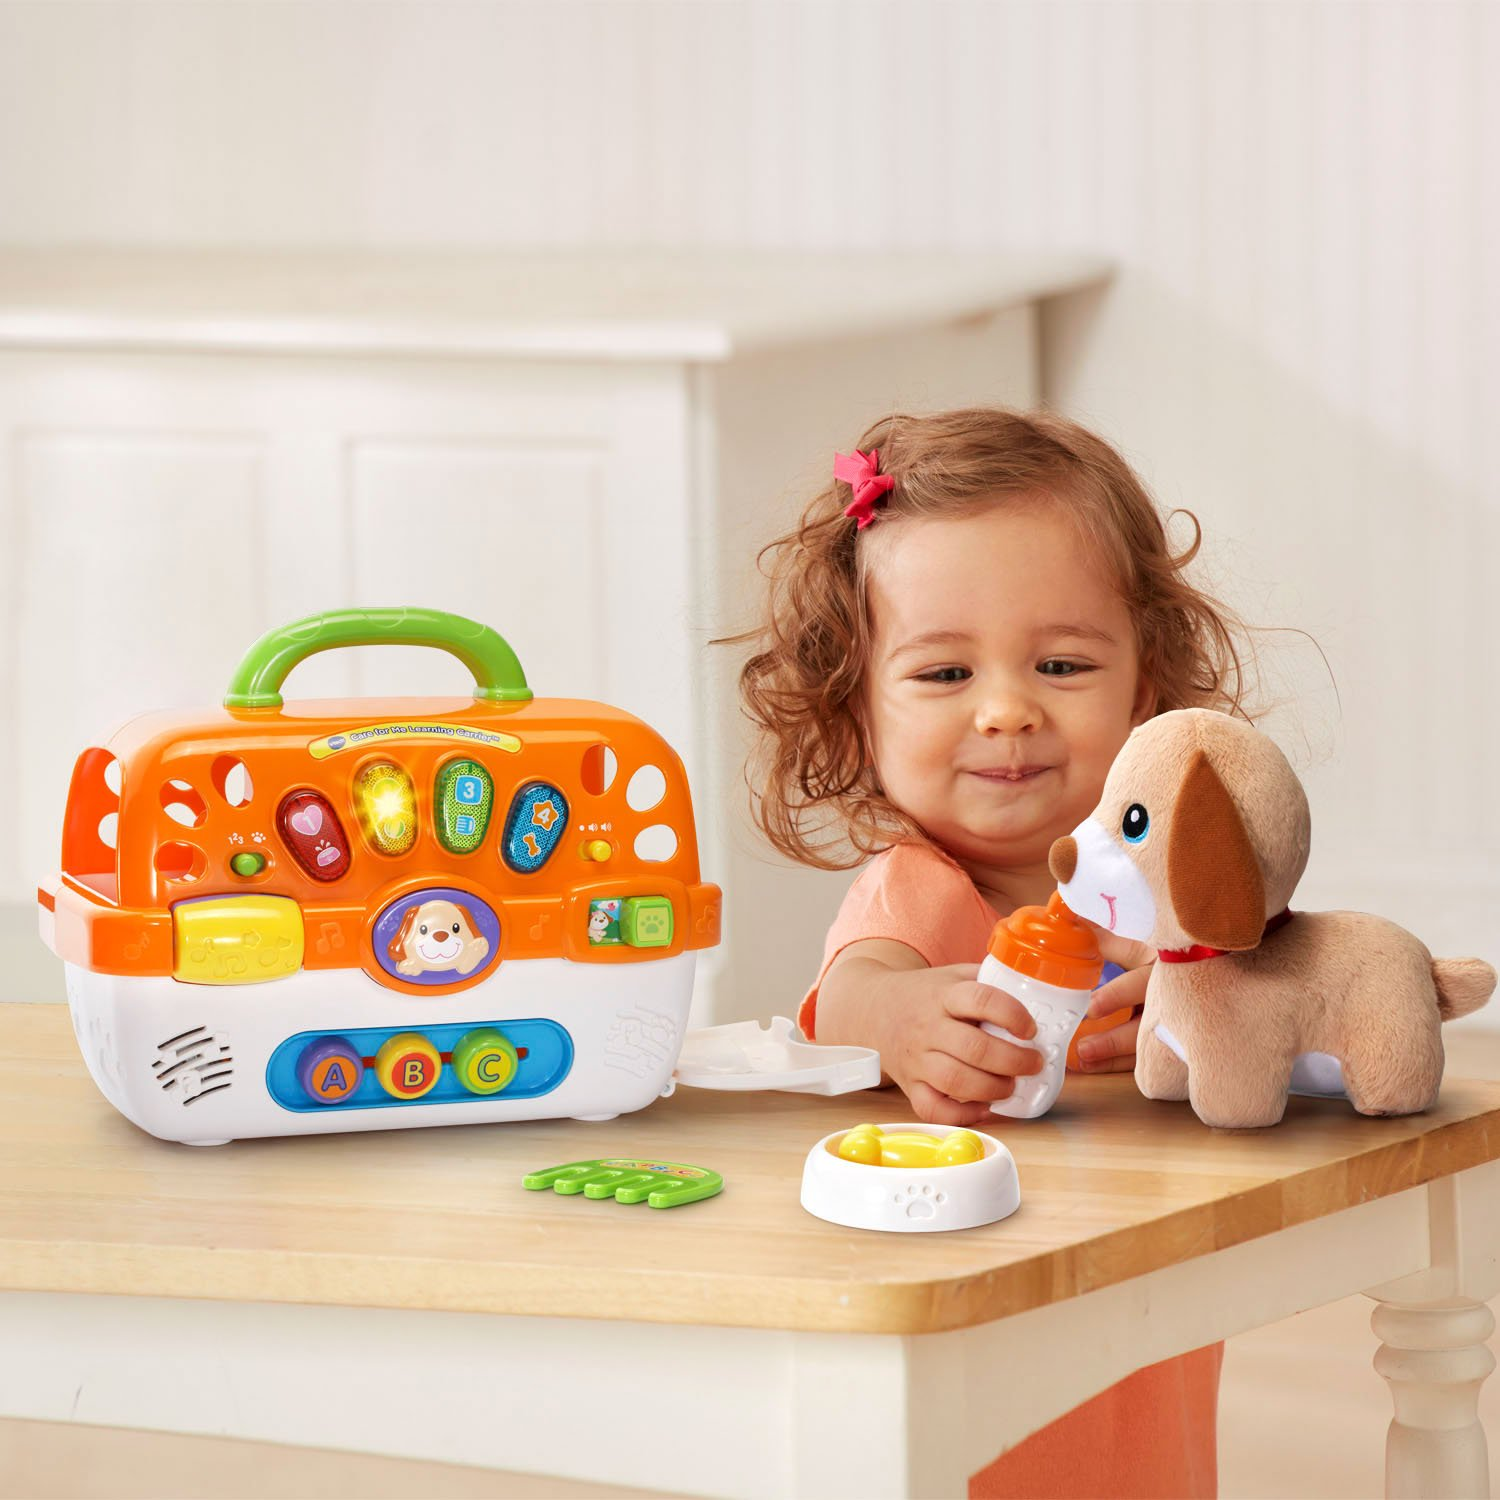 VTech Care for Me Learning Carrier Toy, Orange by VTech (Image #4)